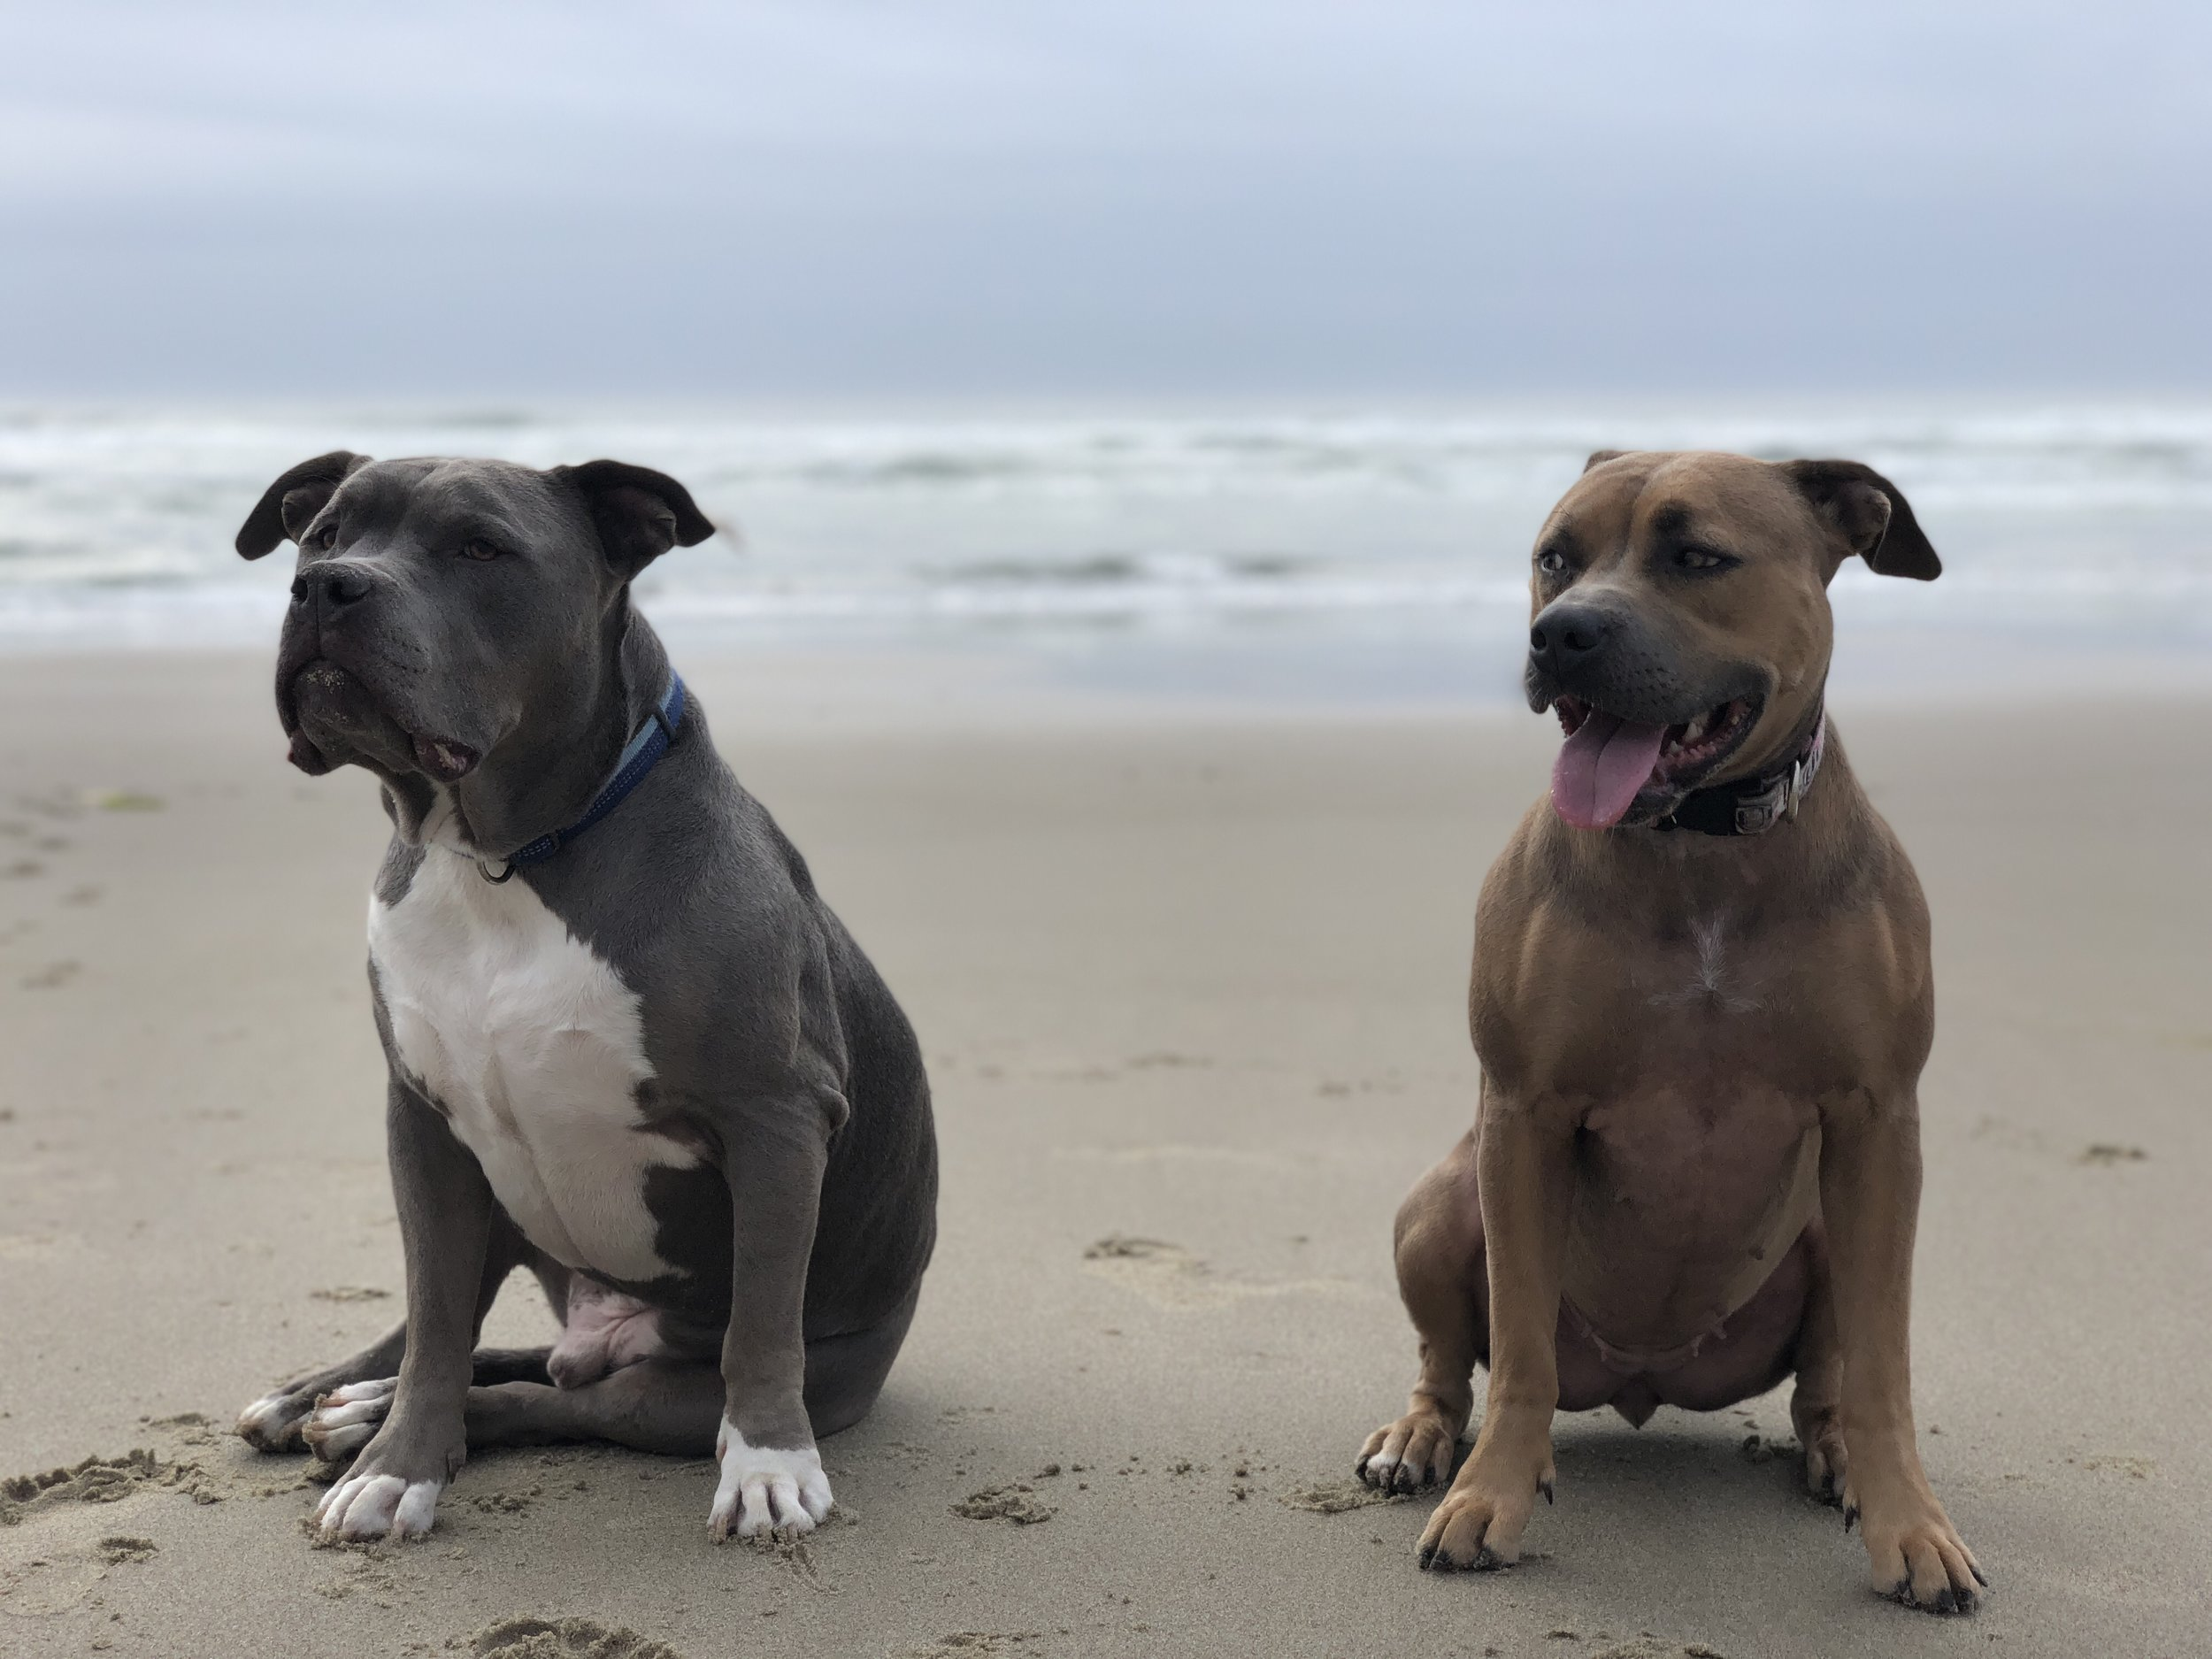 Spontaneous trip to the Oregon Coast with our pups, Newman & Delilah.